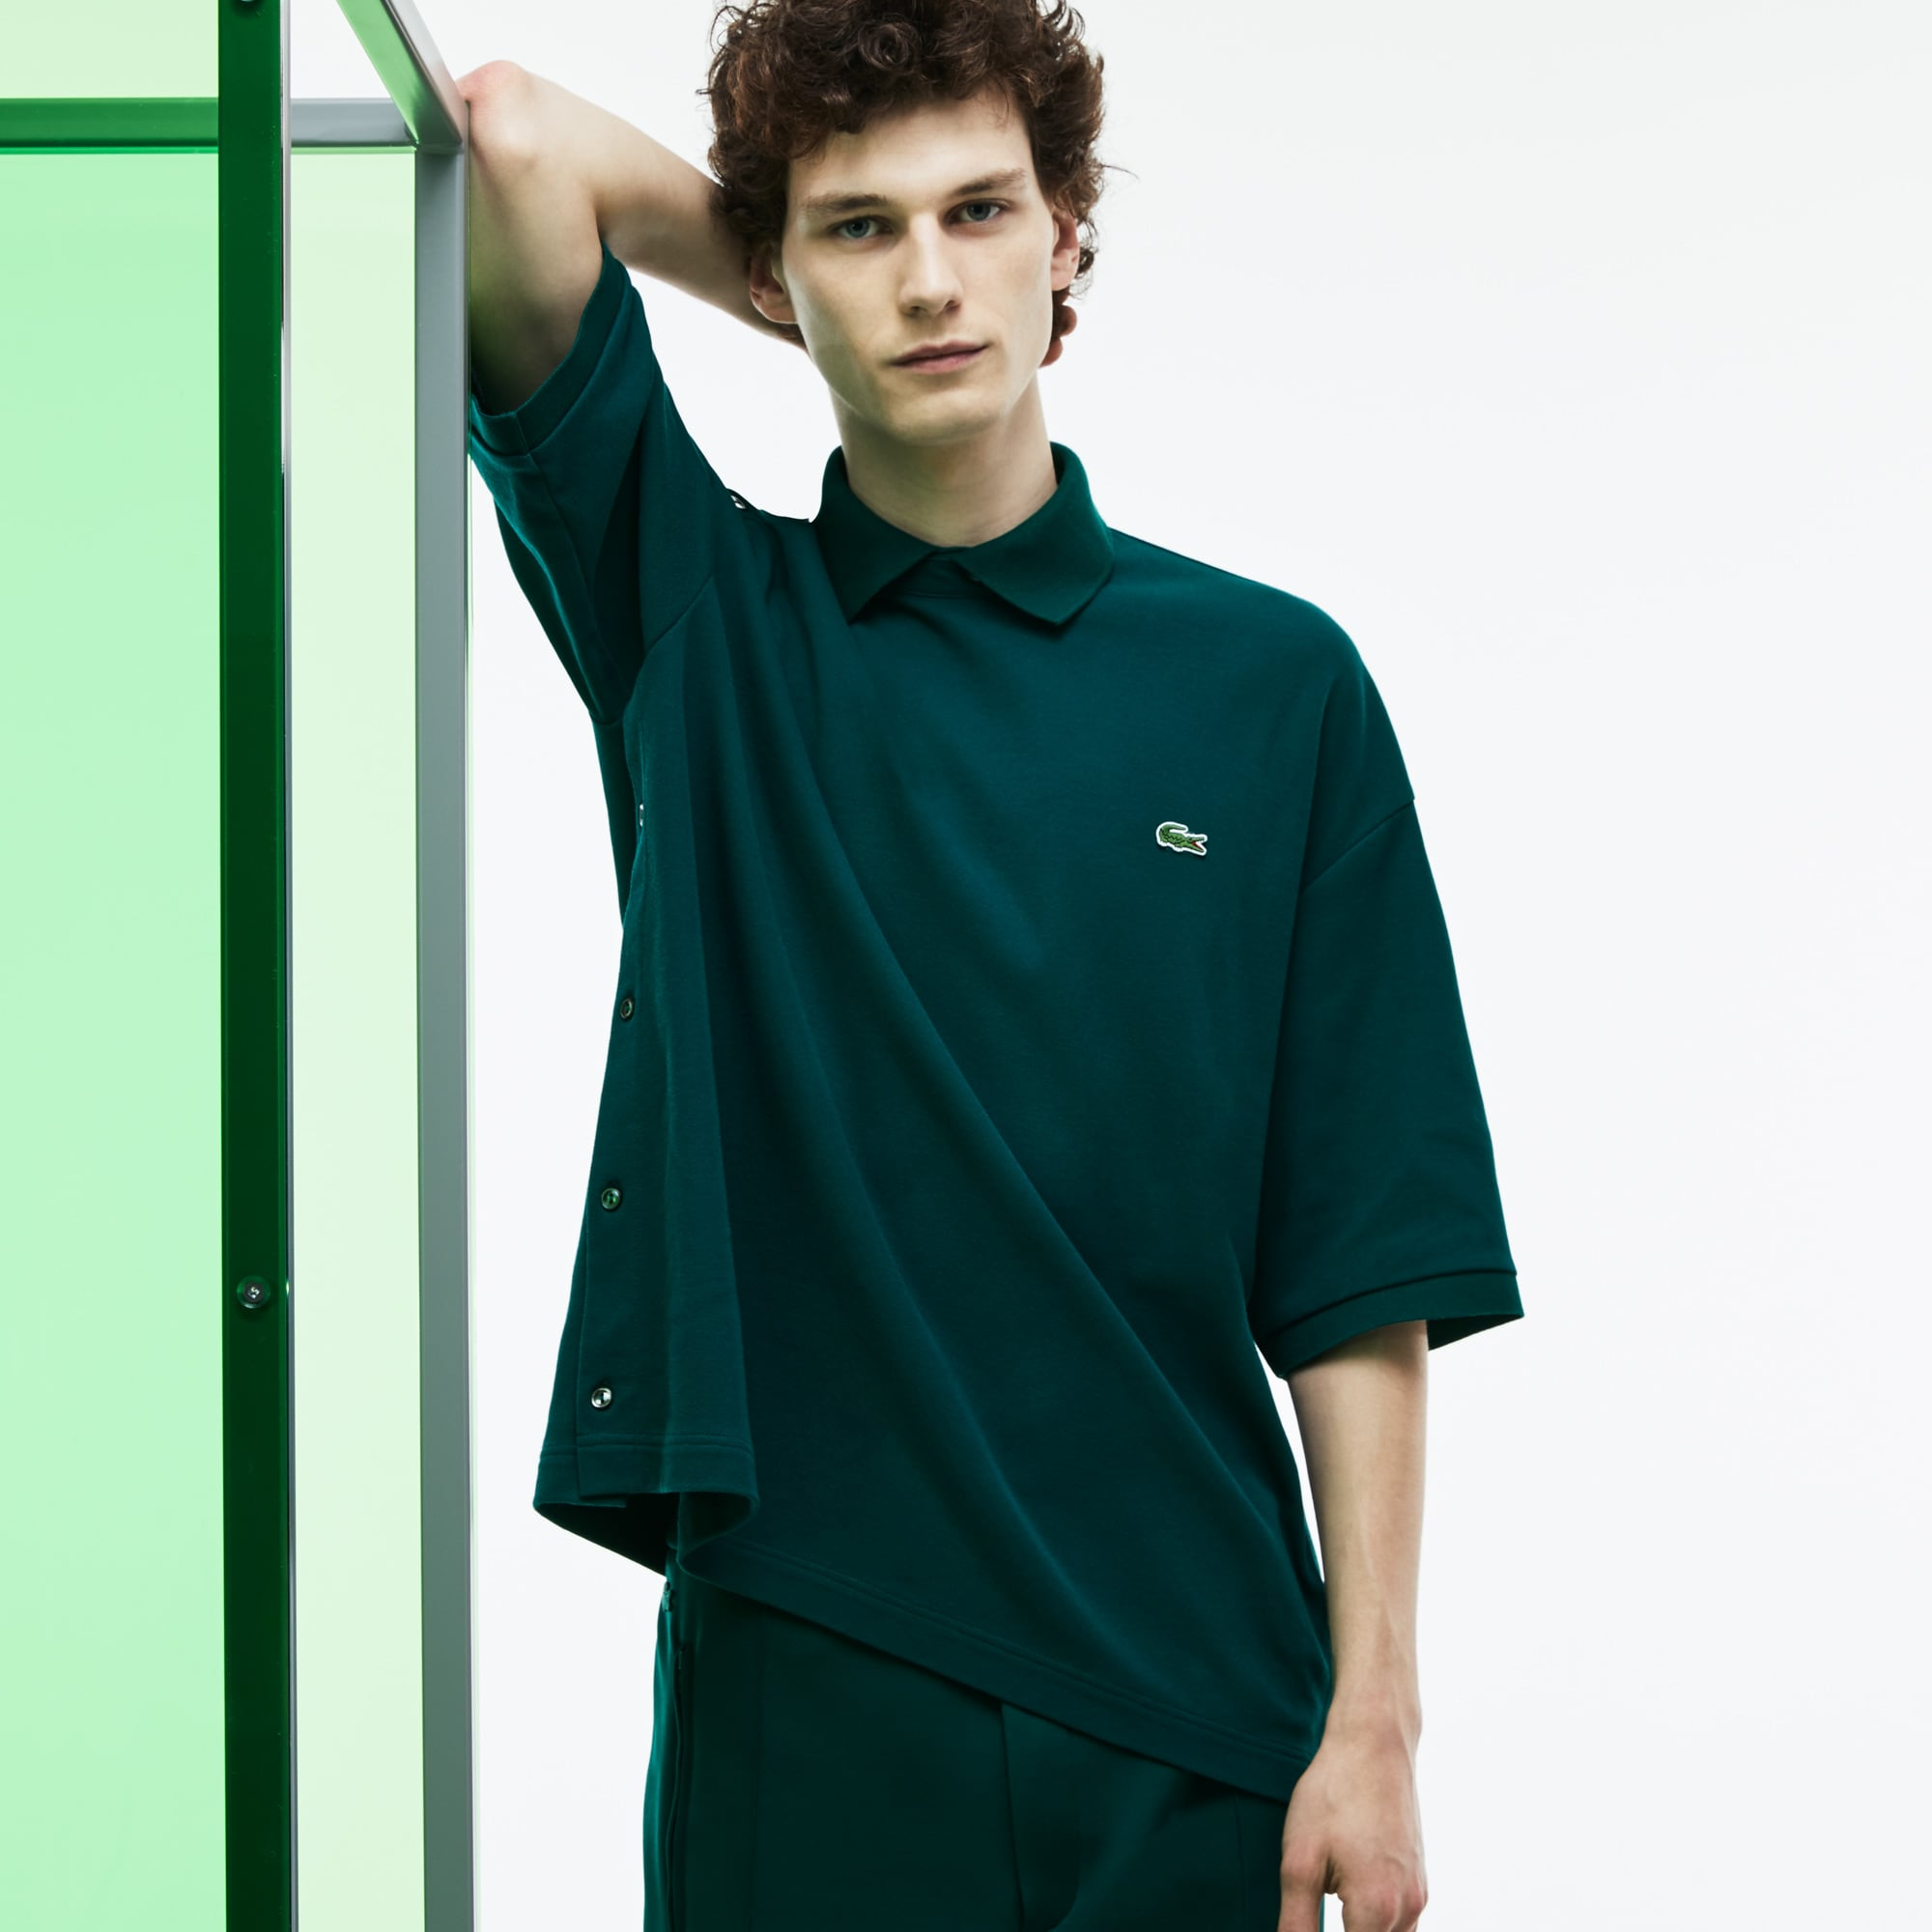 Men's Fashion Show Loose Fit Buttoned Sleeves Polo Shirt